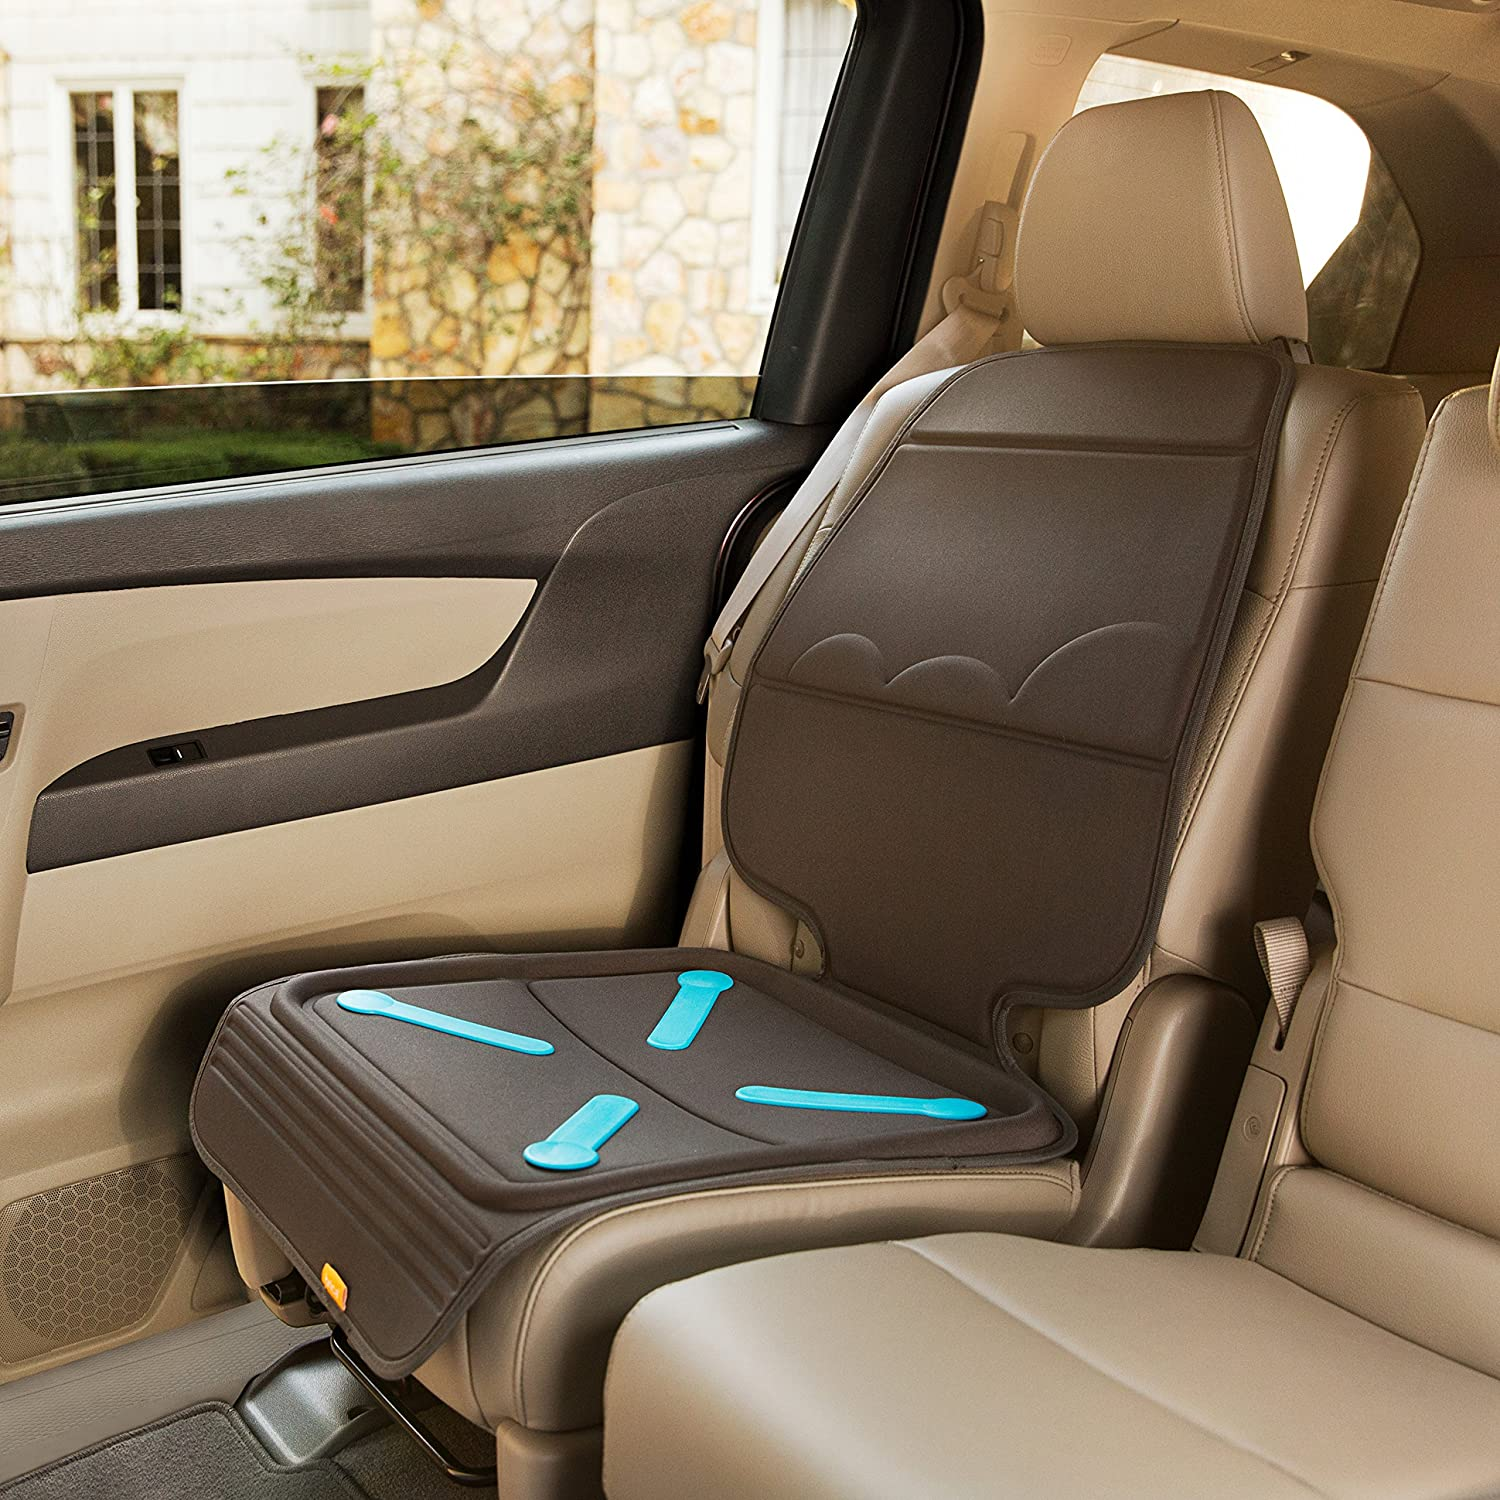 Car Seat Protector >> Buy Brica Guardian Car Seat Protector Online At Low Prices